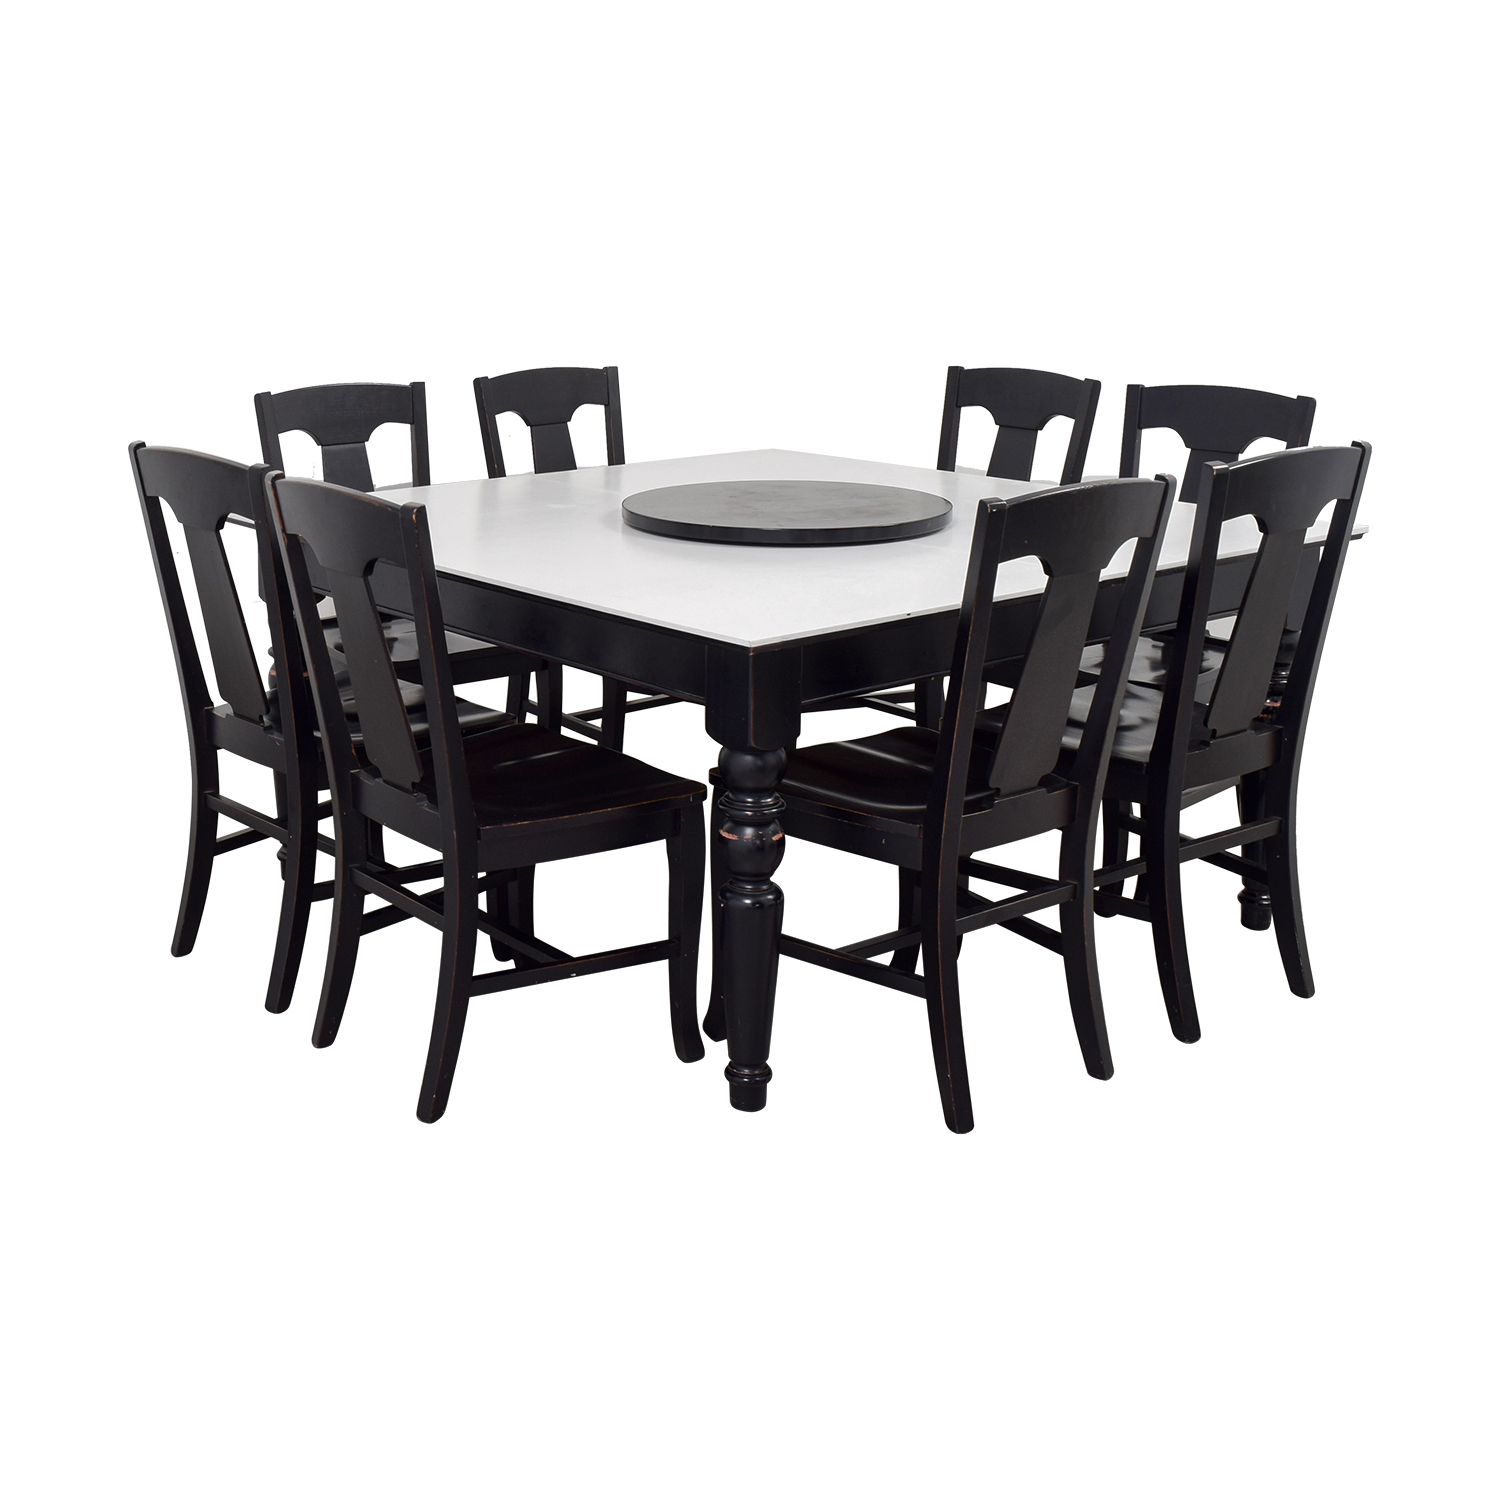 White And Black Dining Set: Pottery Barn Pottery Barn White And Black